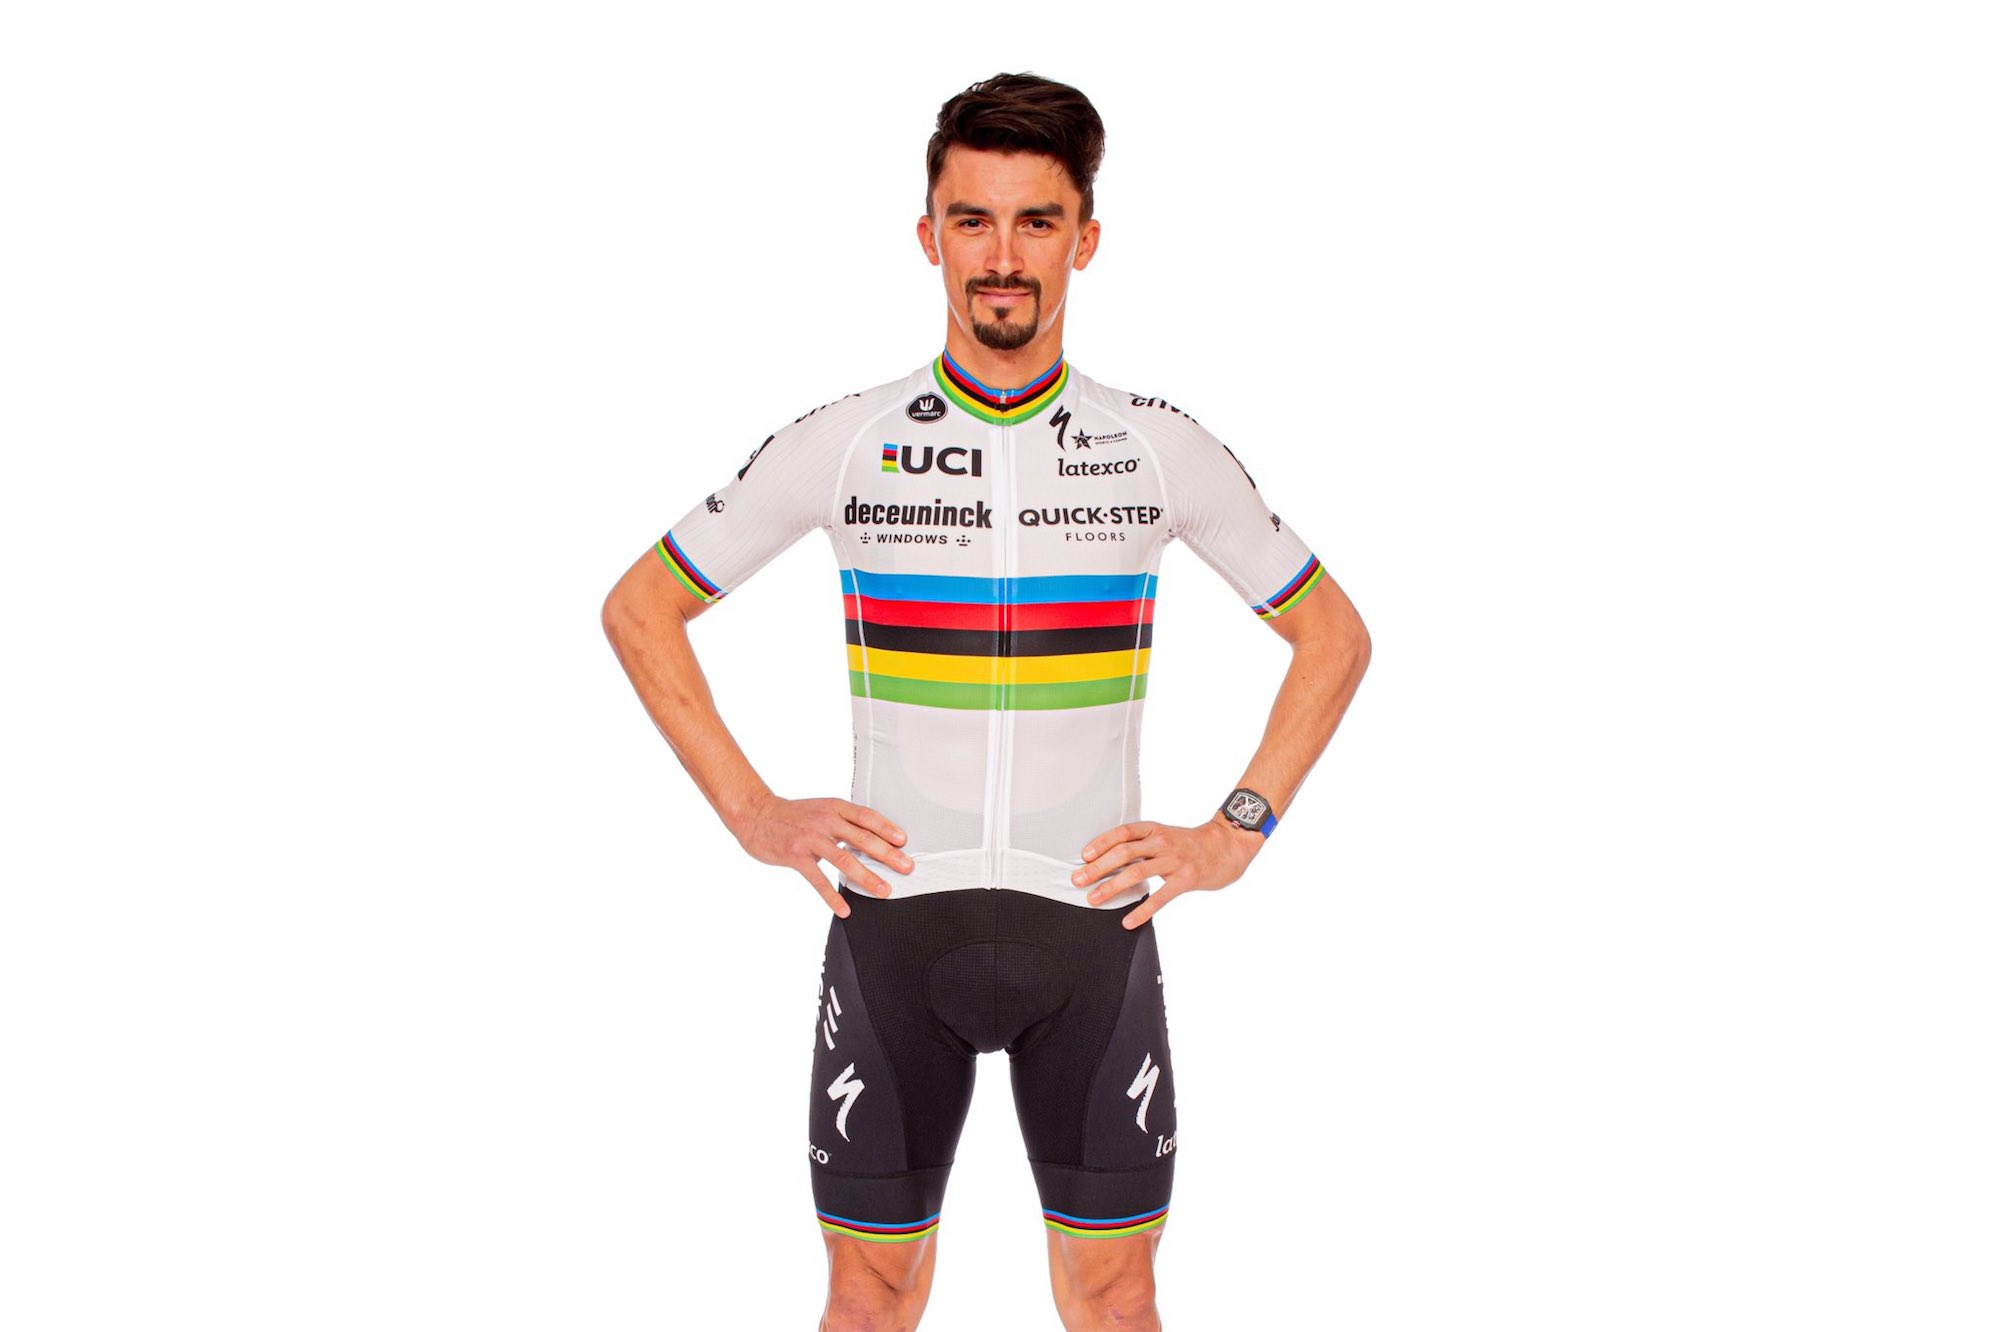 'The culmination of a lifelong dream': Julian Alaphilippe reveals his world champion's jersey for 2021